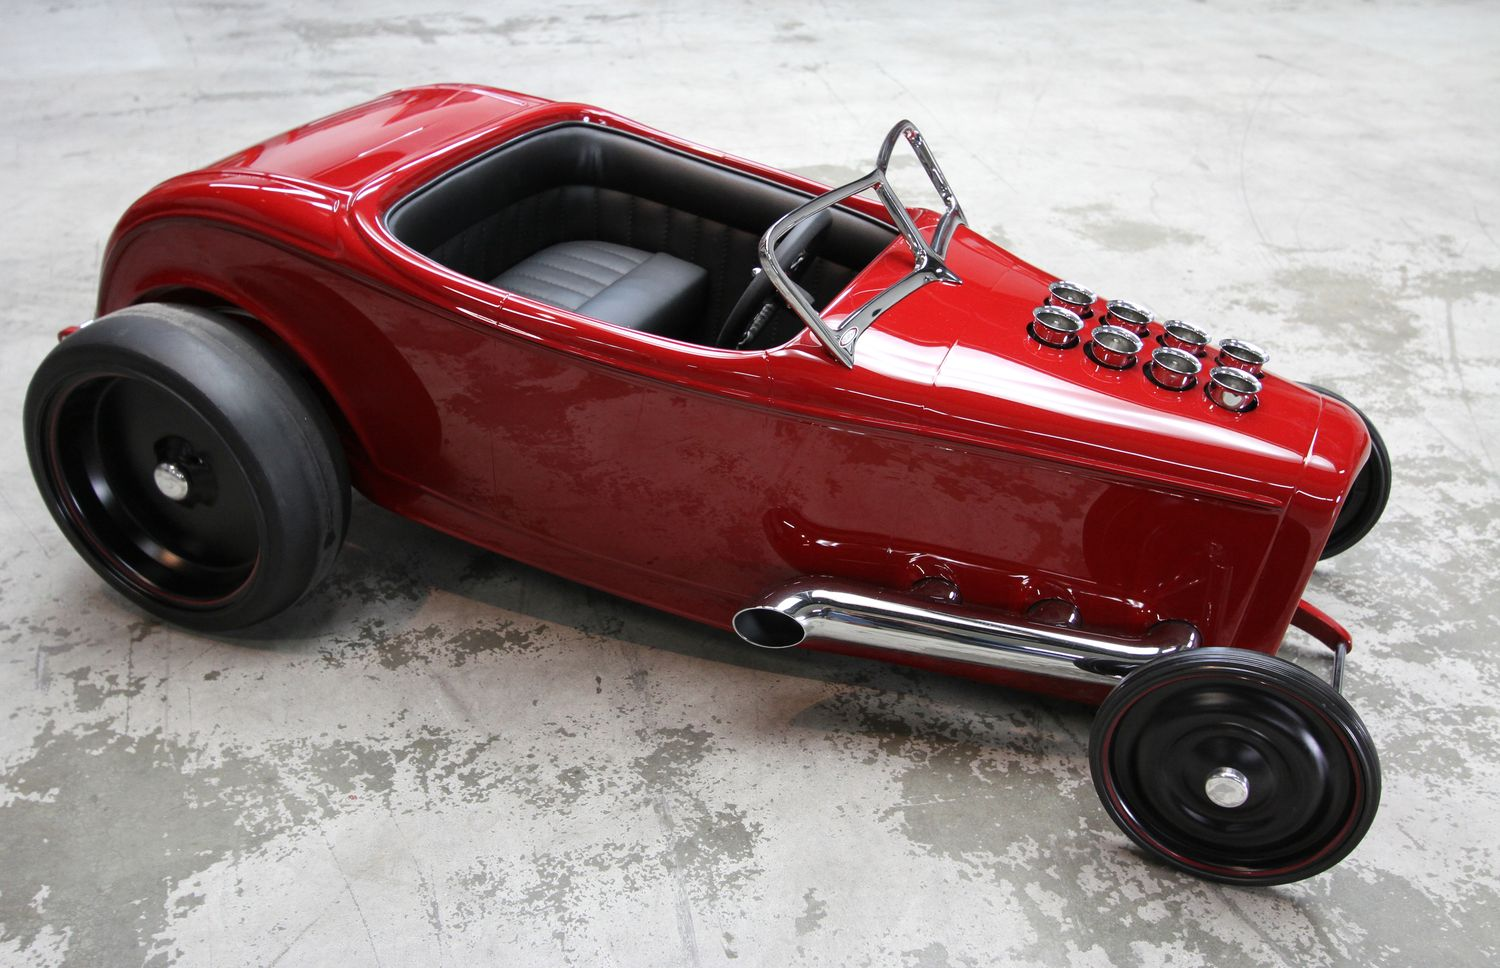 Vintage Pedal Cars Are Always Awesome To Check Out Carpy S Cafe Racers